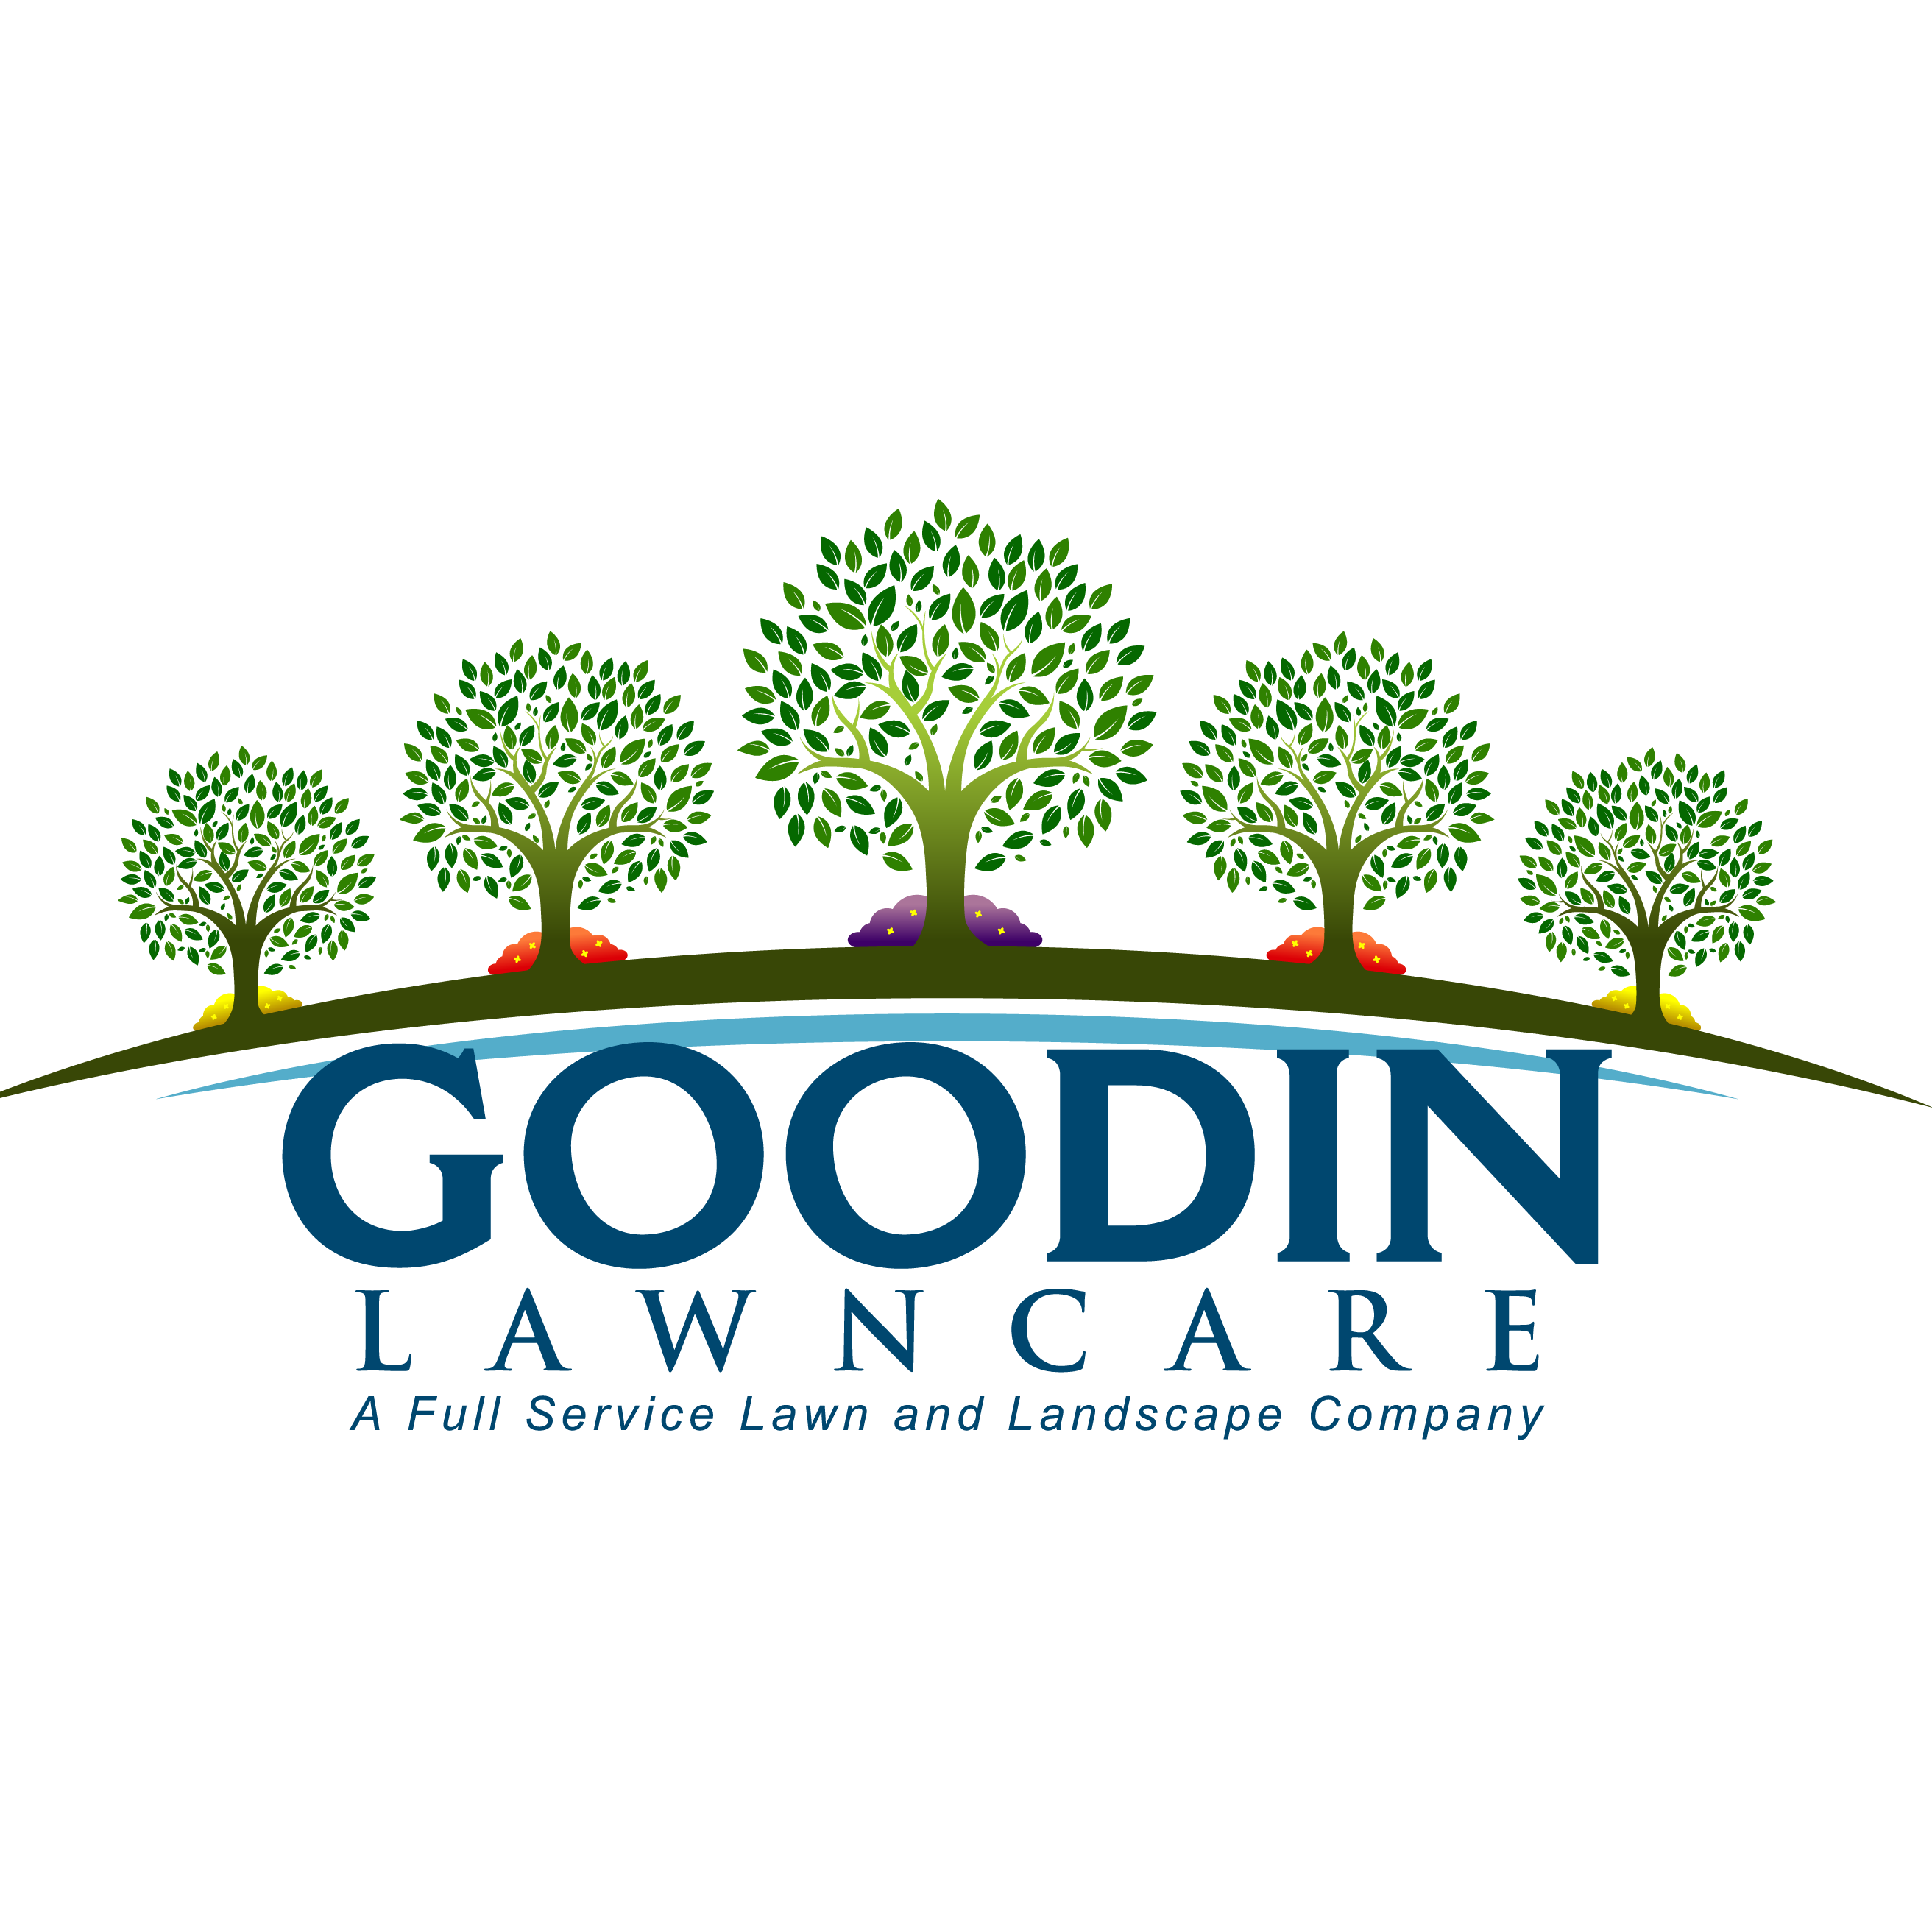 Goodin Lawncare image 5